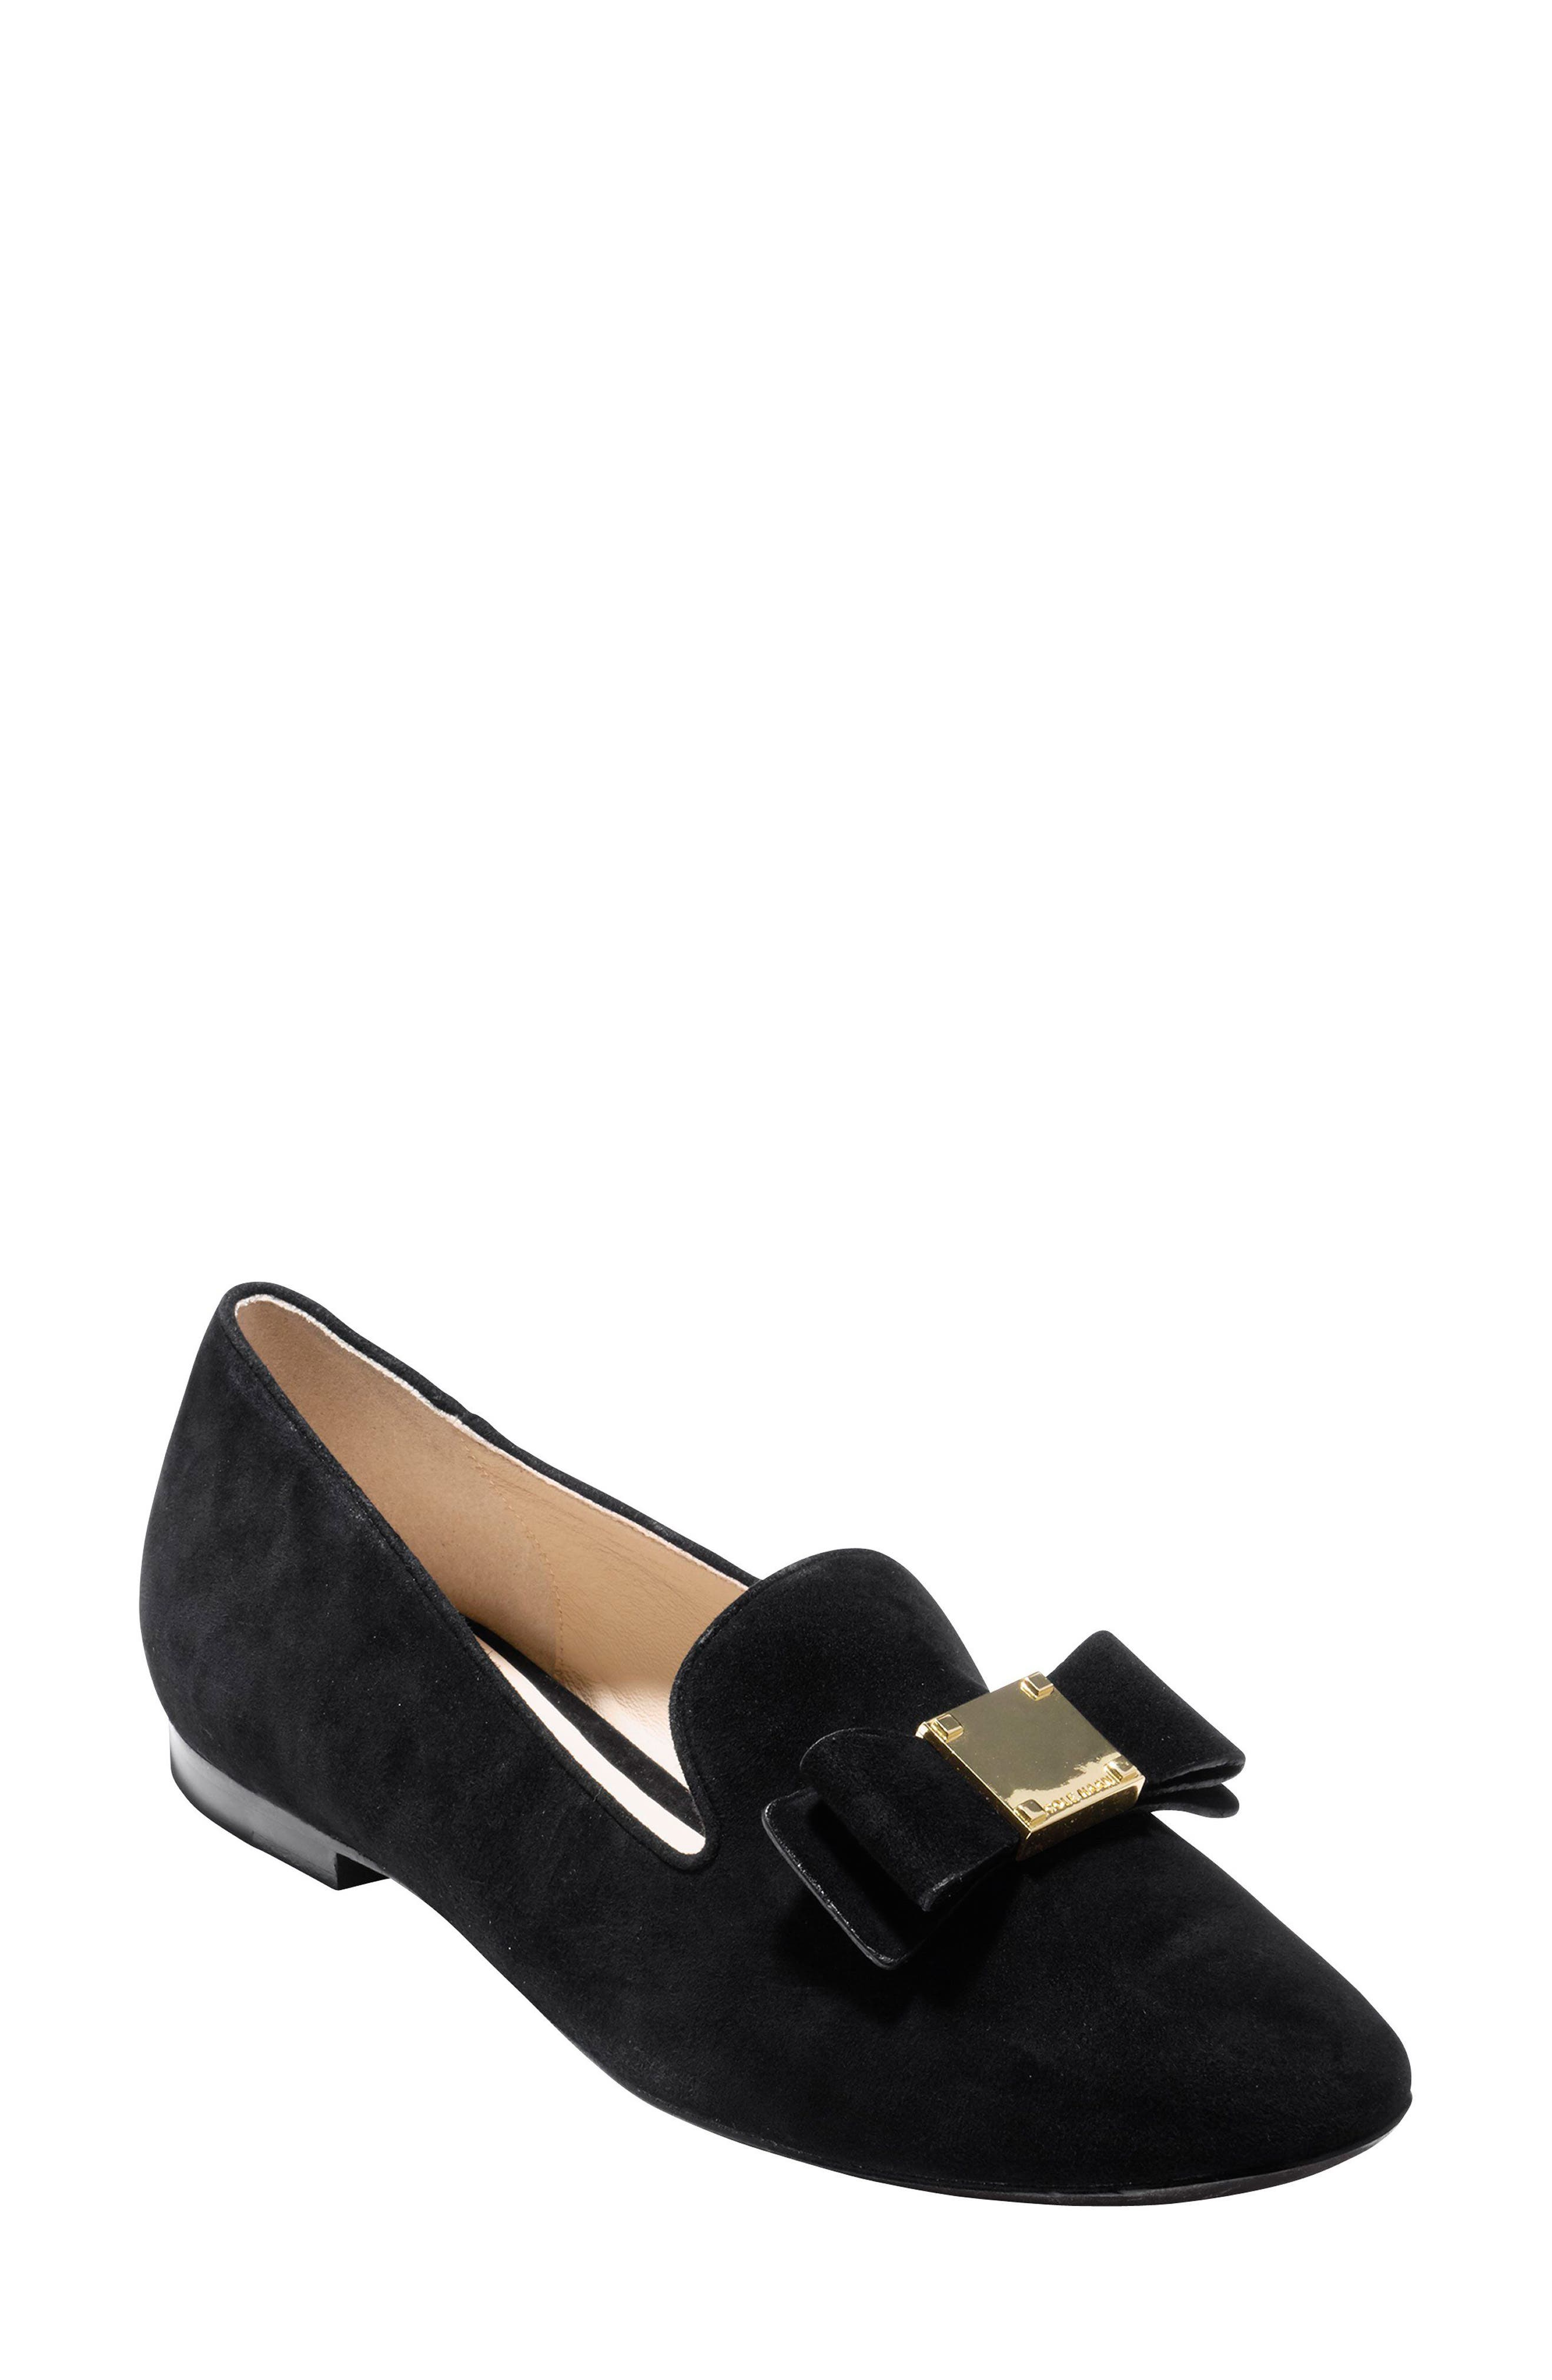 Alternate Image 1 Selected - Cole Haan Tali Bow Loafer (Women)